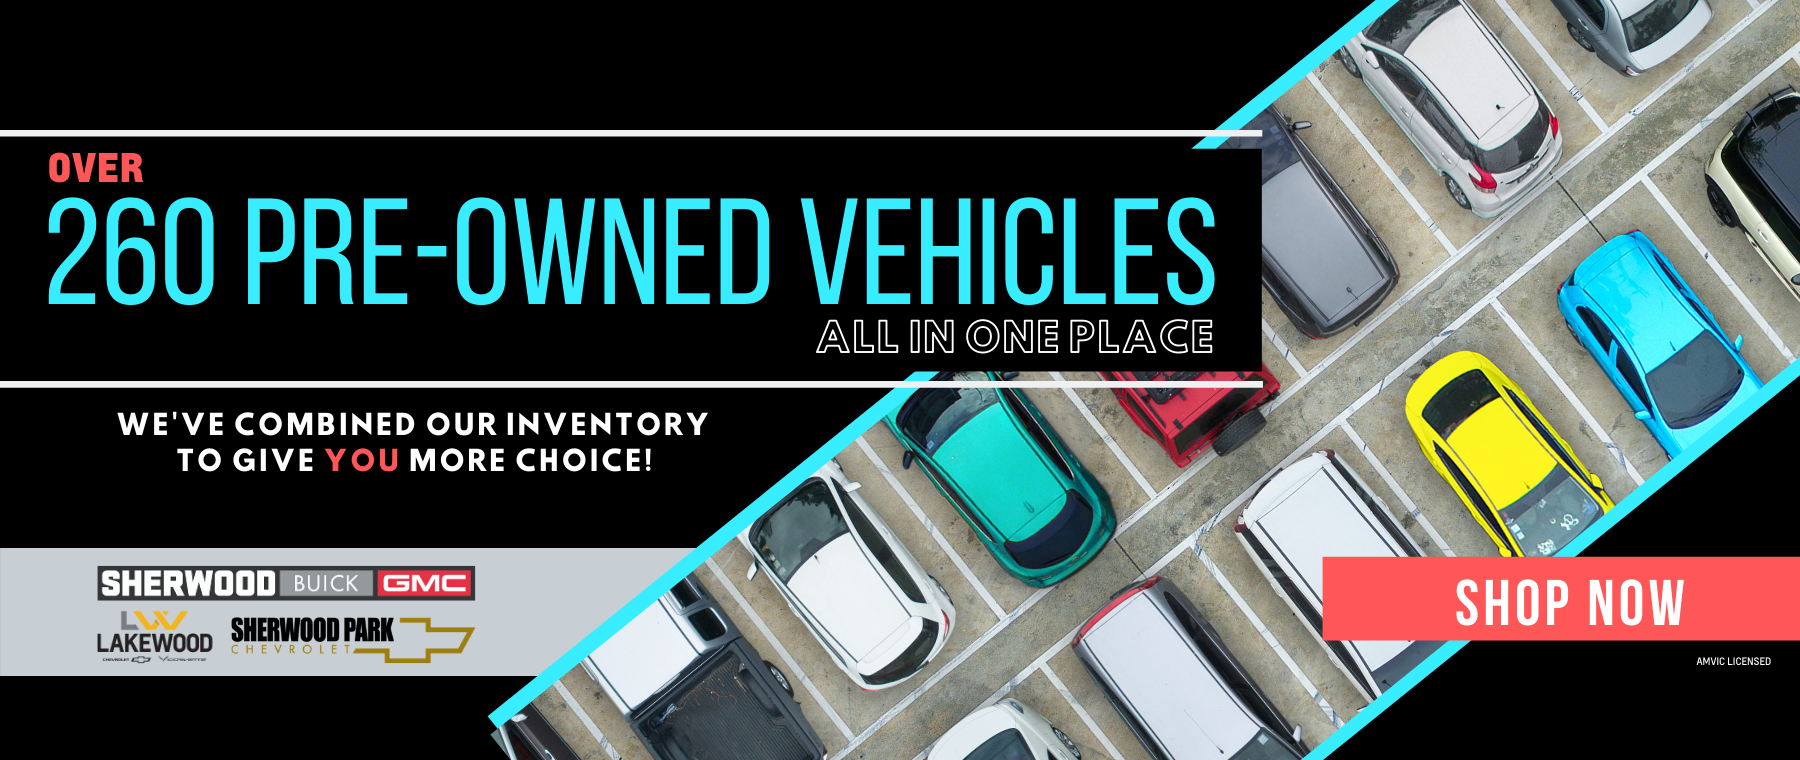 We've combined our inventory to give you more options.